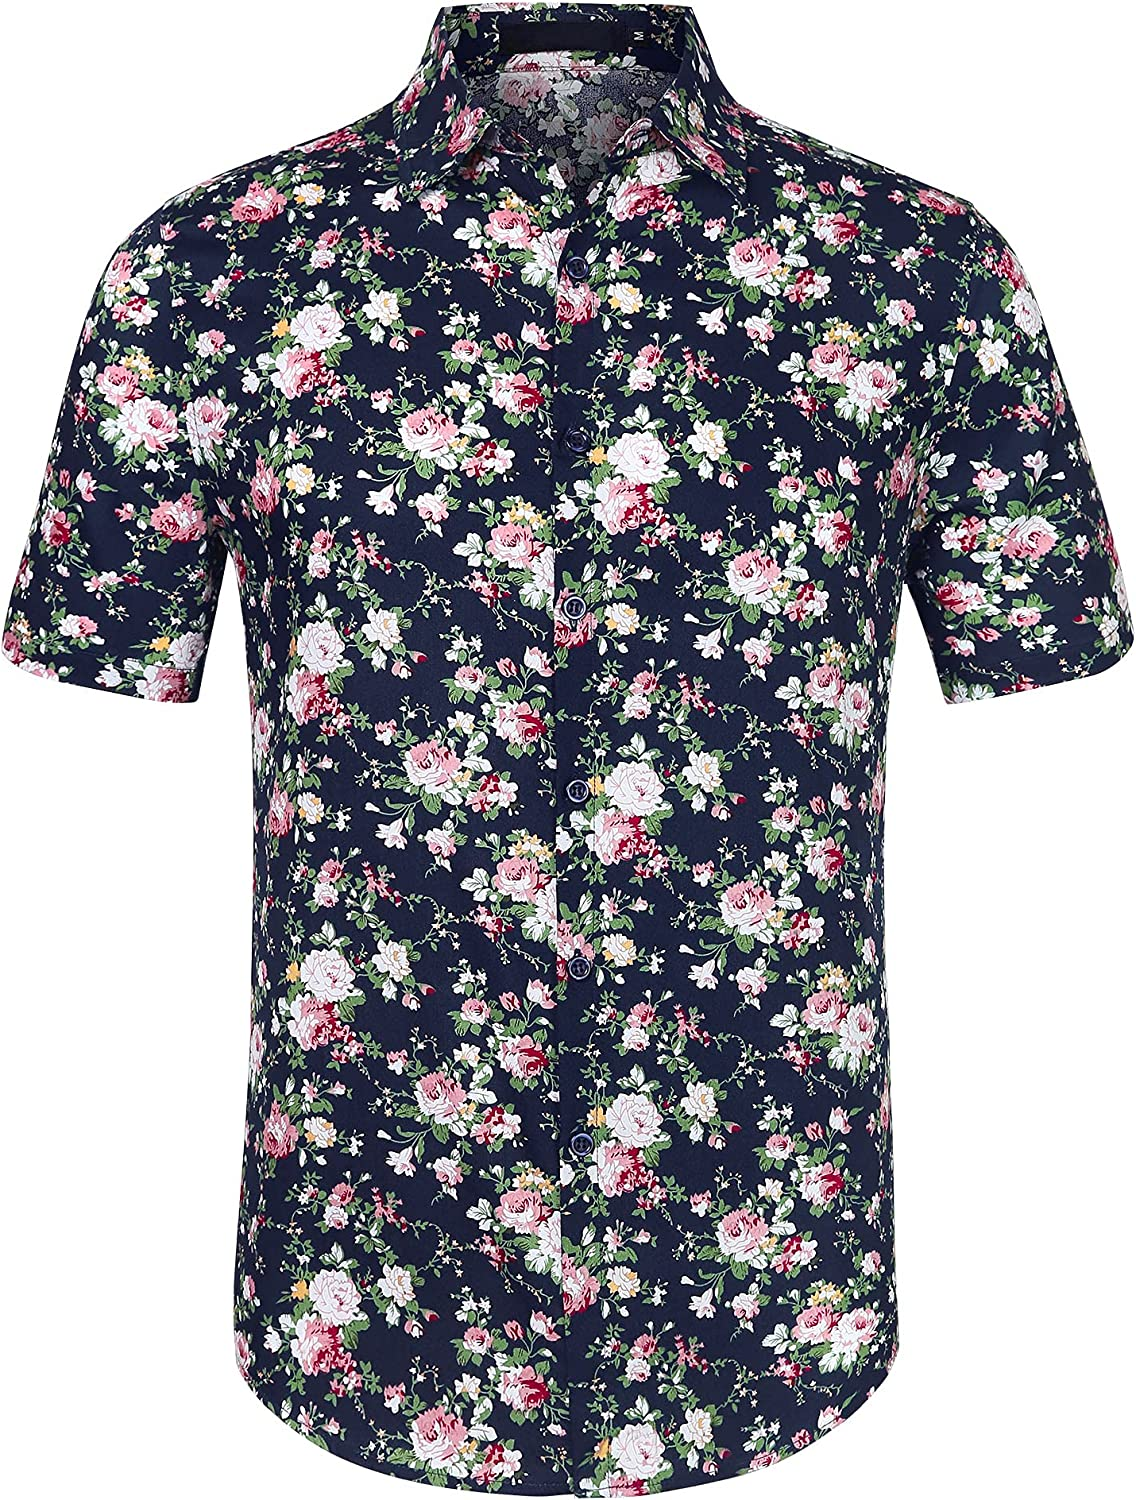 uxcell Men Summer Floral Printed Sleeves Down Button Daily bargain Wholesale sale Shirt Short